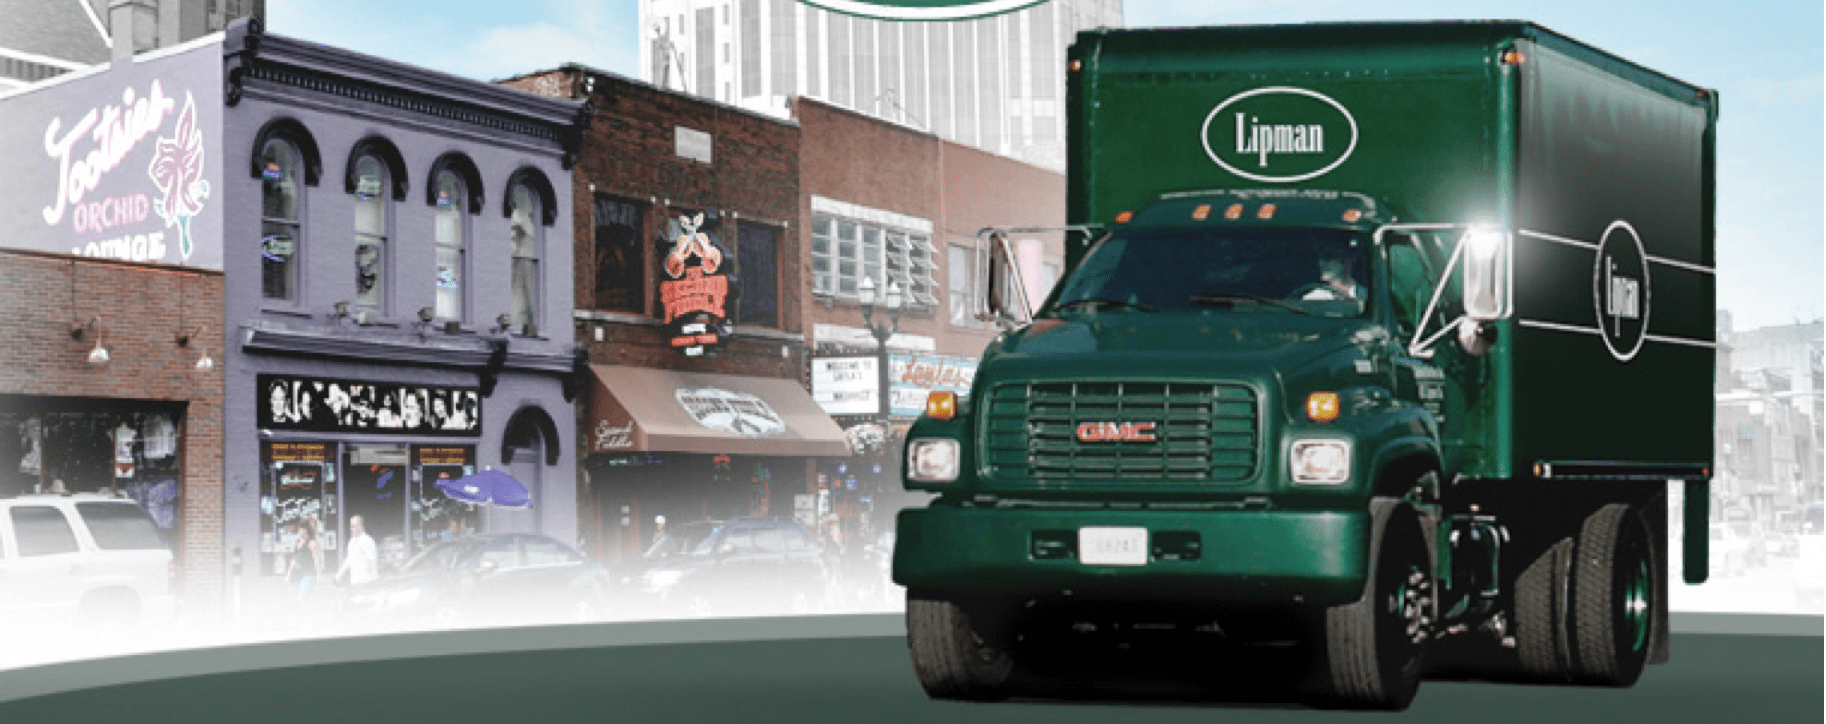 Wholesale Company Service Lipman Brothers Expands Leadership; Prepares For Growth In